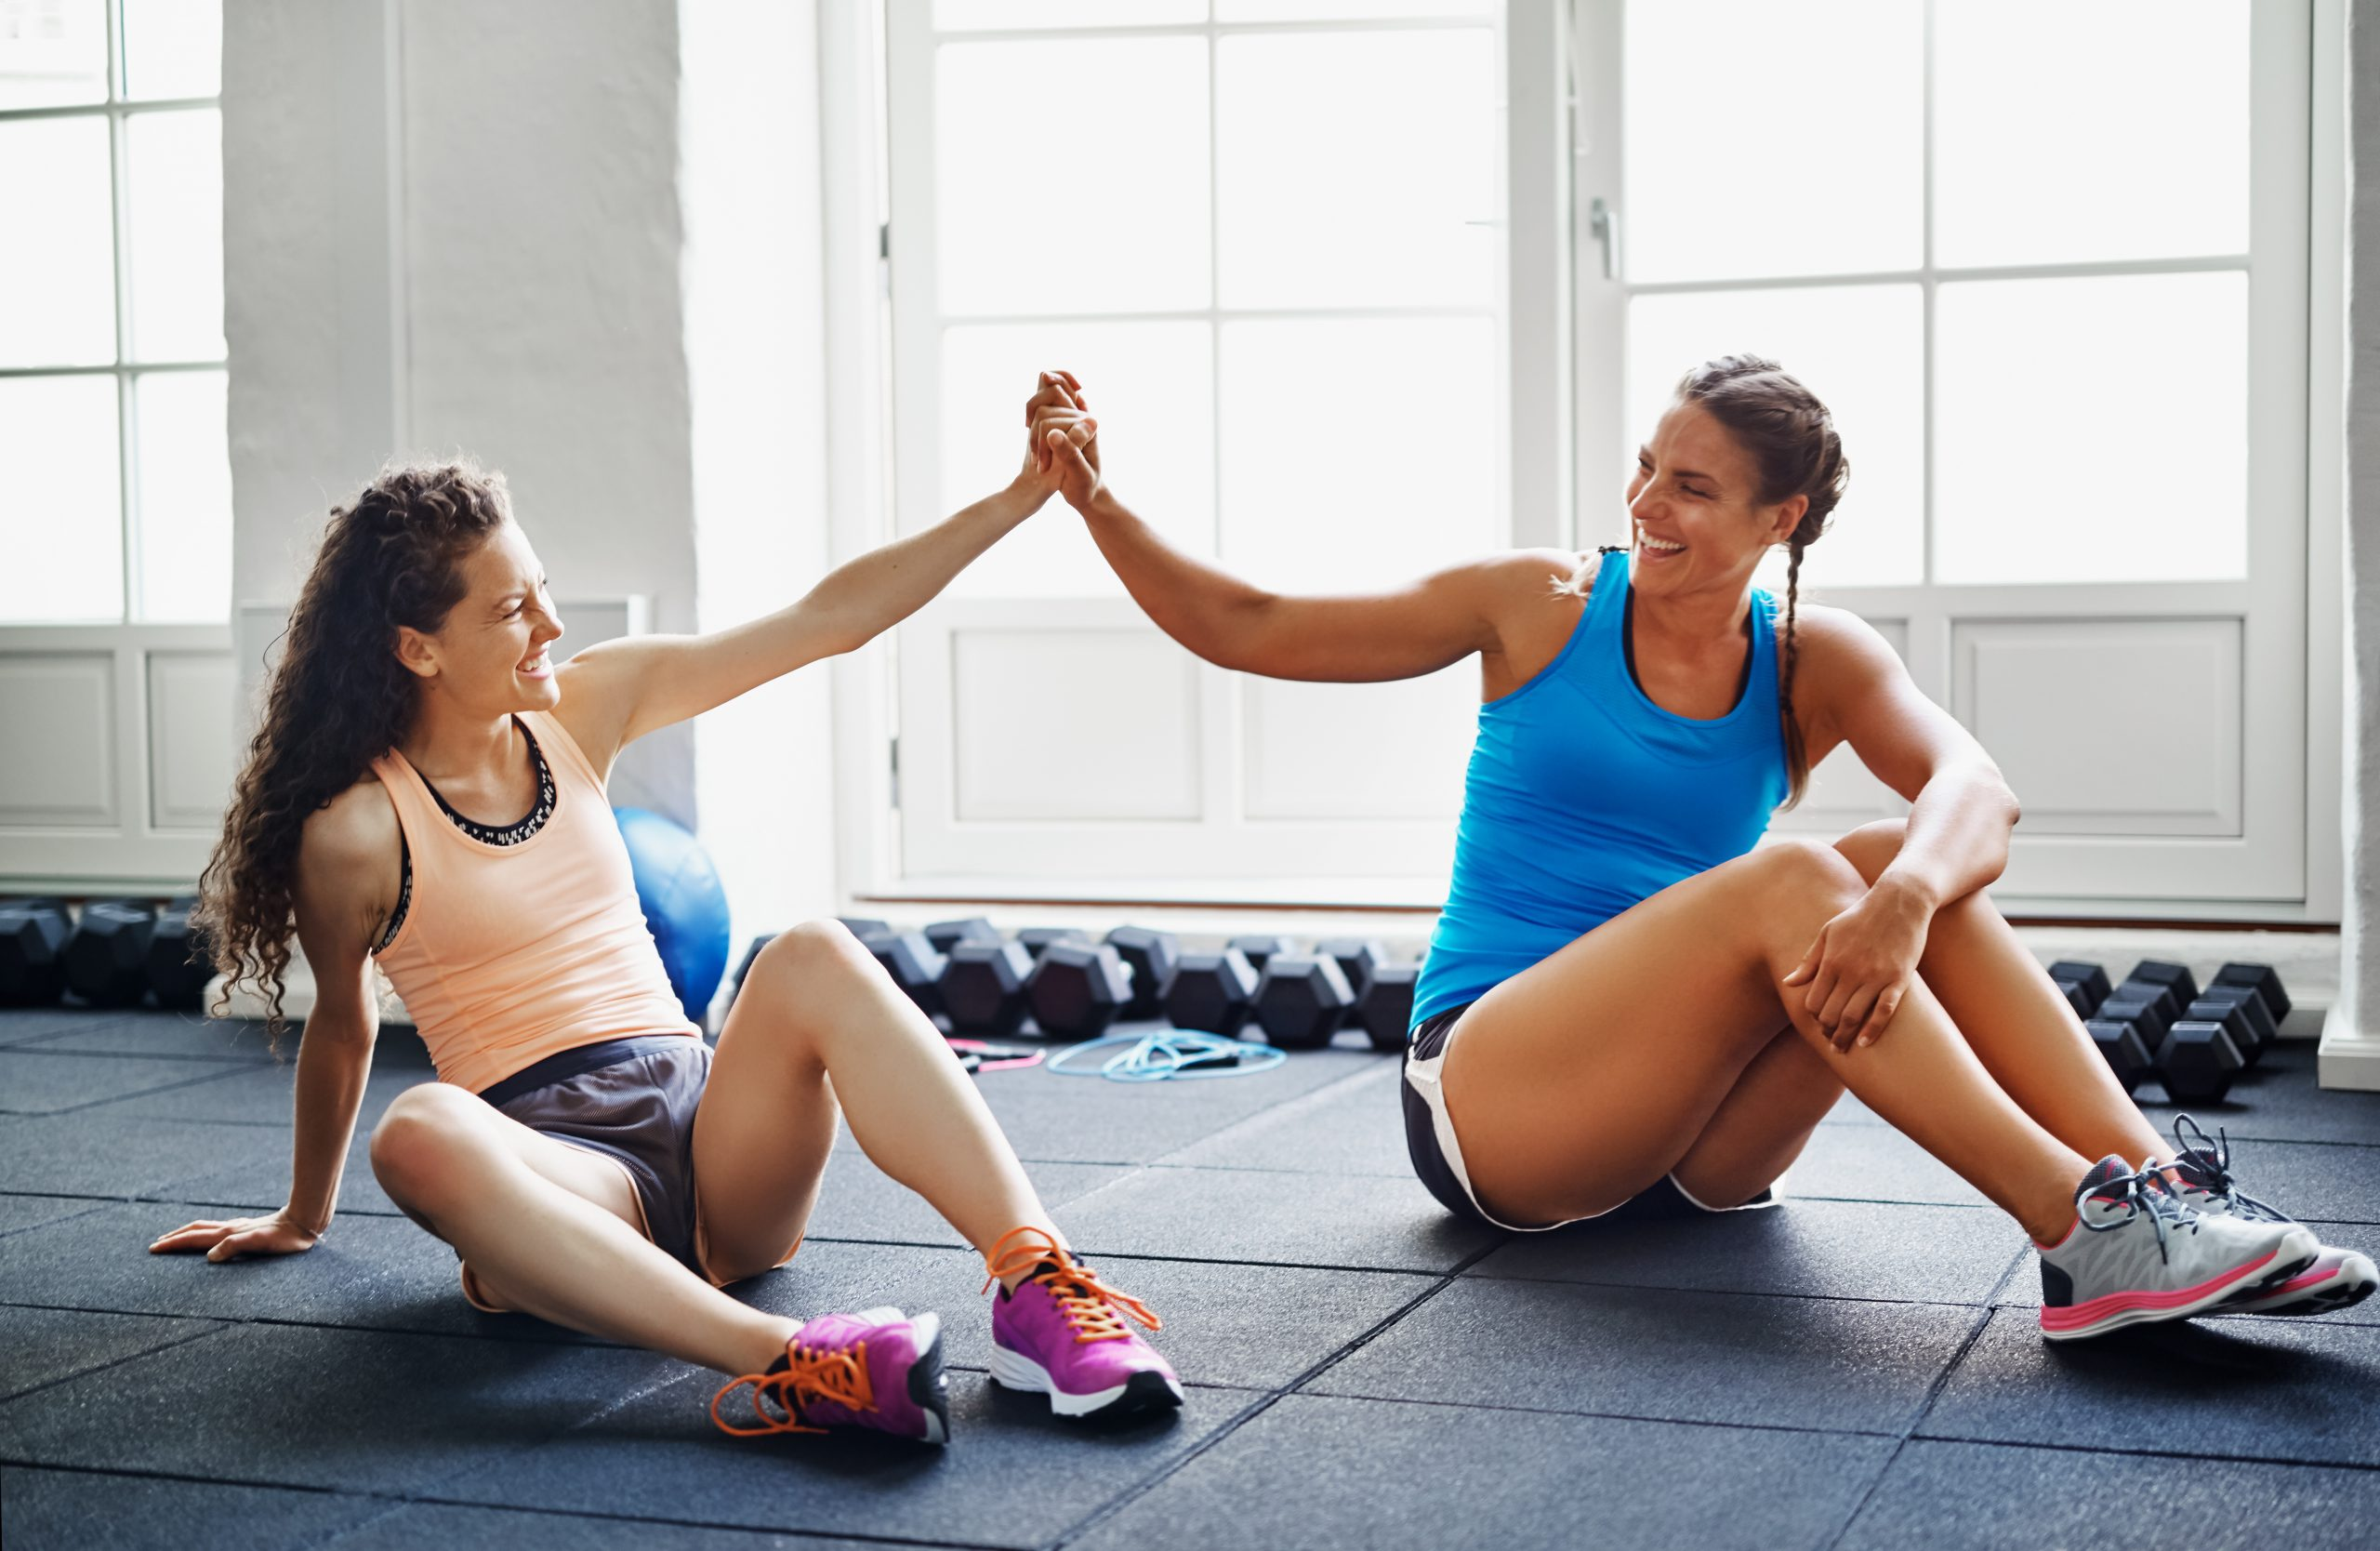 two women giving each other a high five after a workout